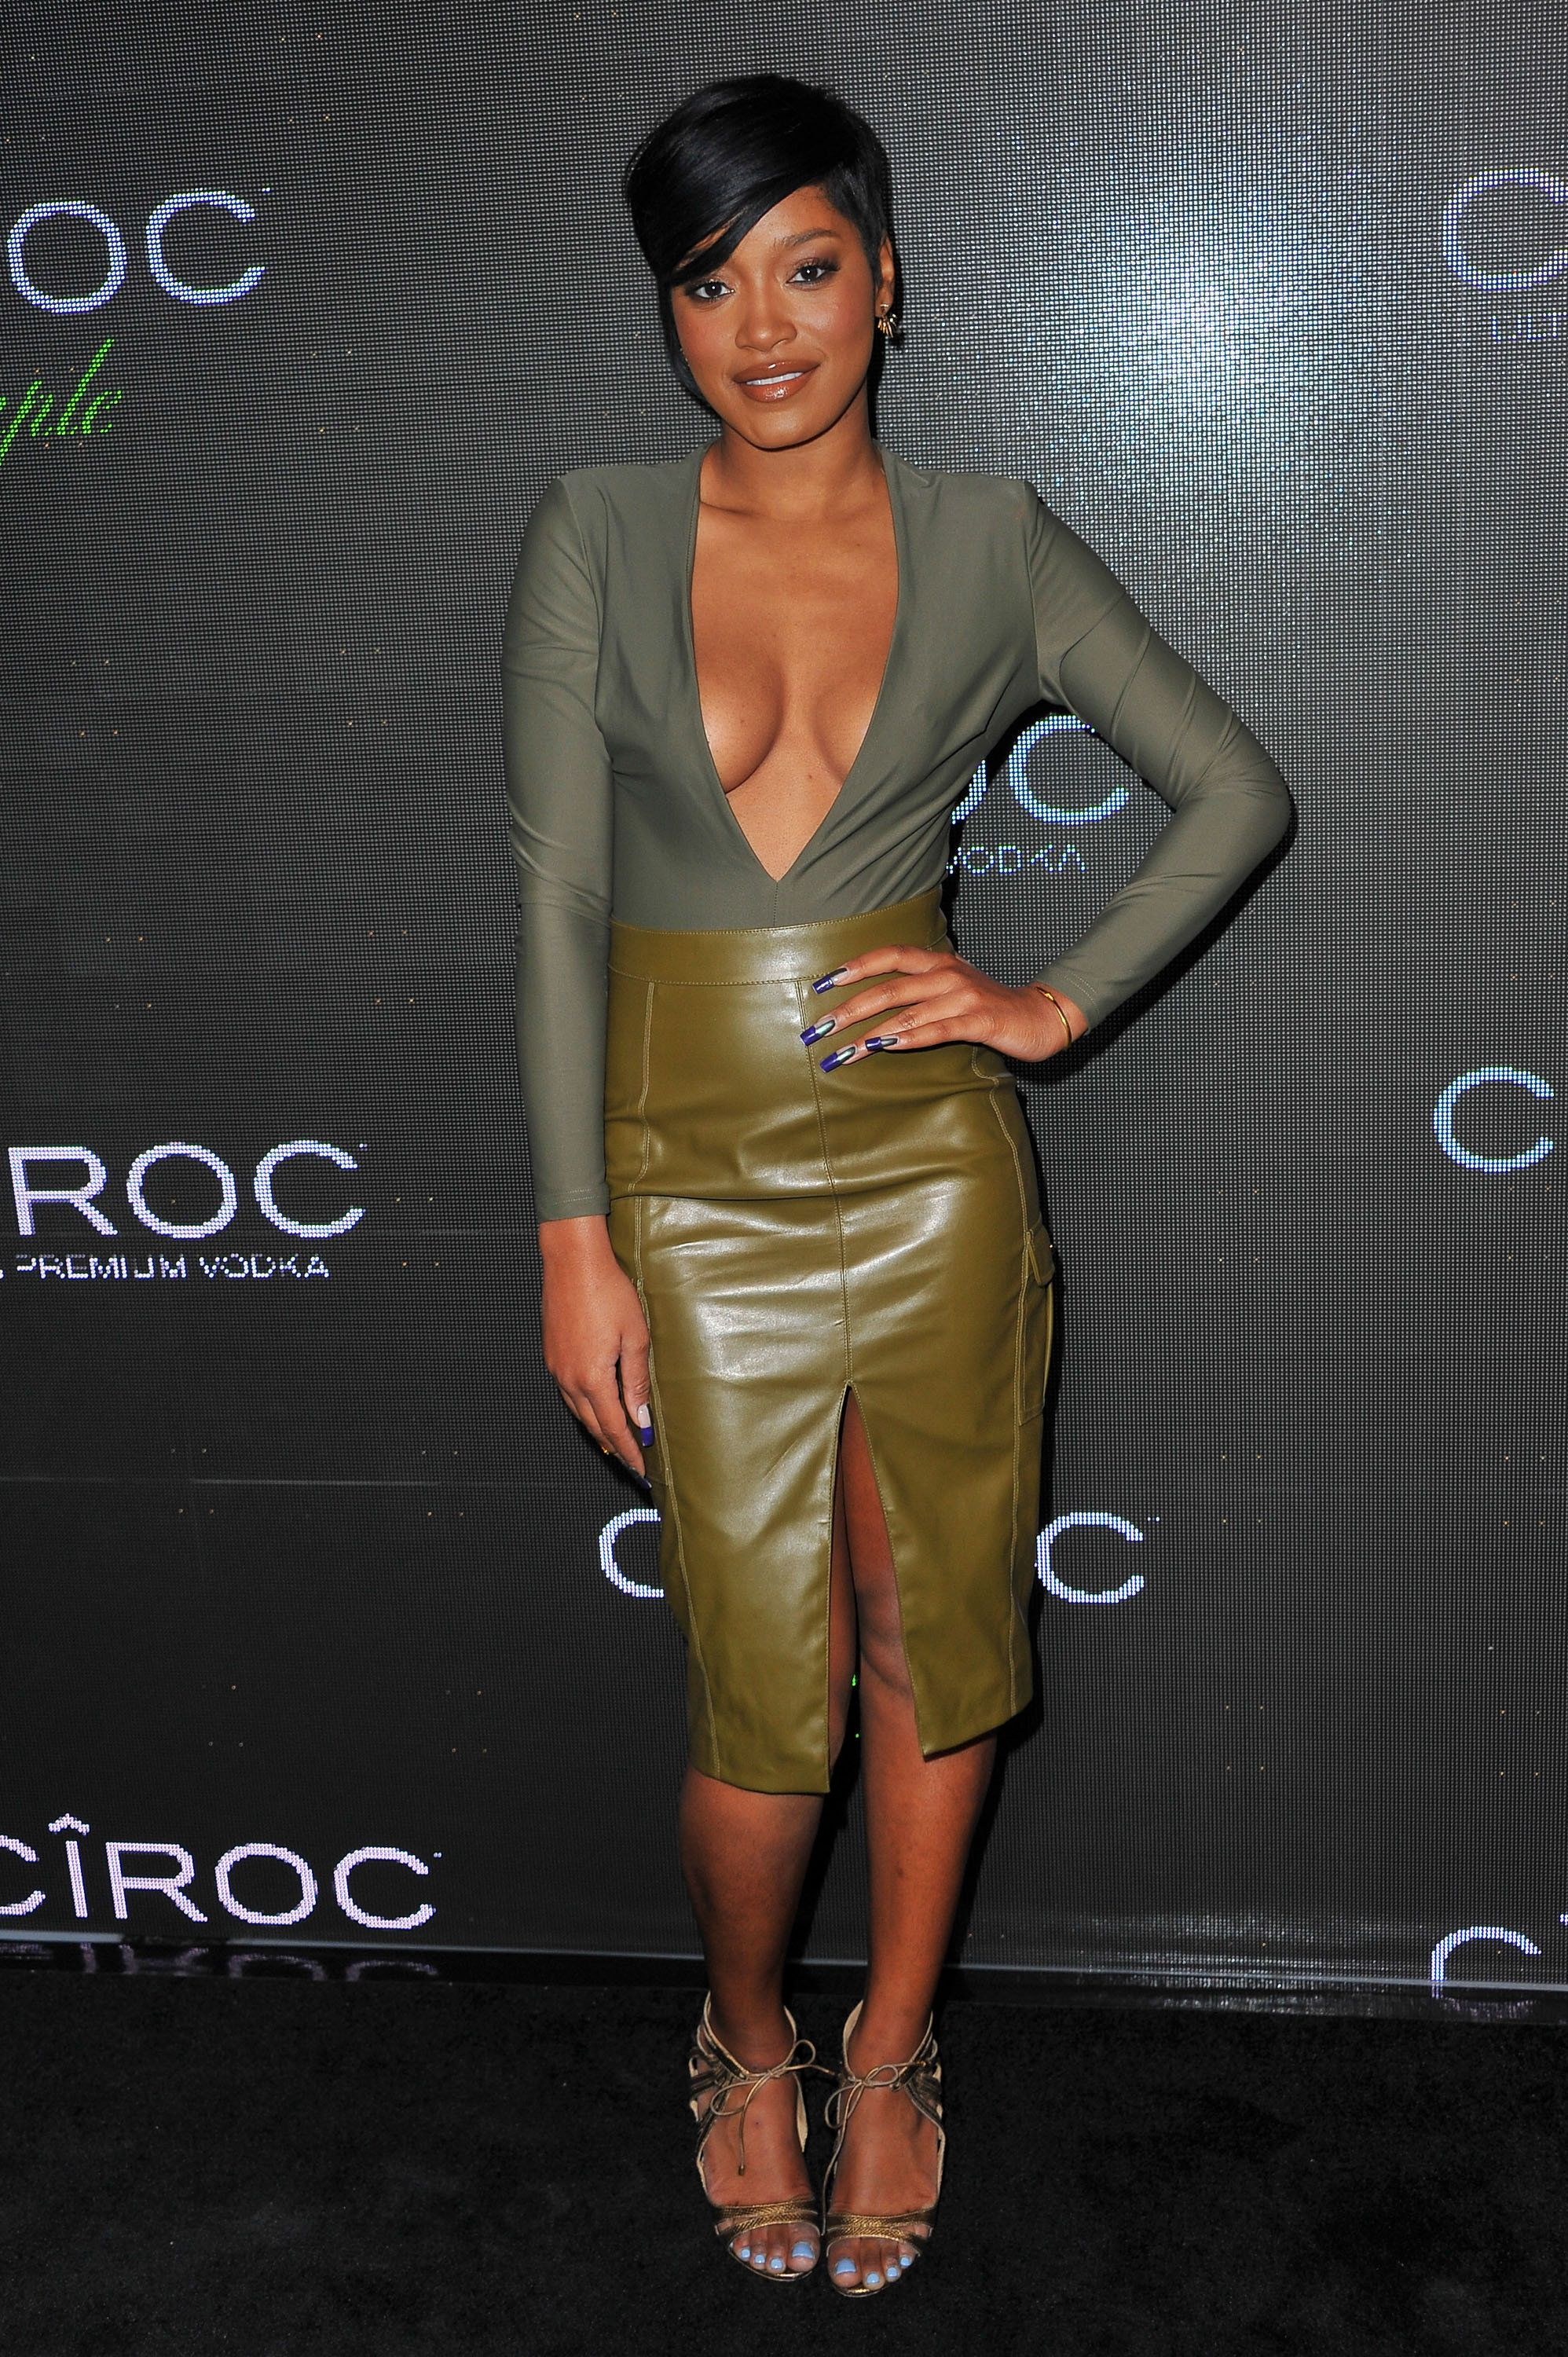 Heart Breaking Girl Wallpaper Keke Palmer Opens Up About Sexuality In Response To